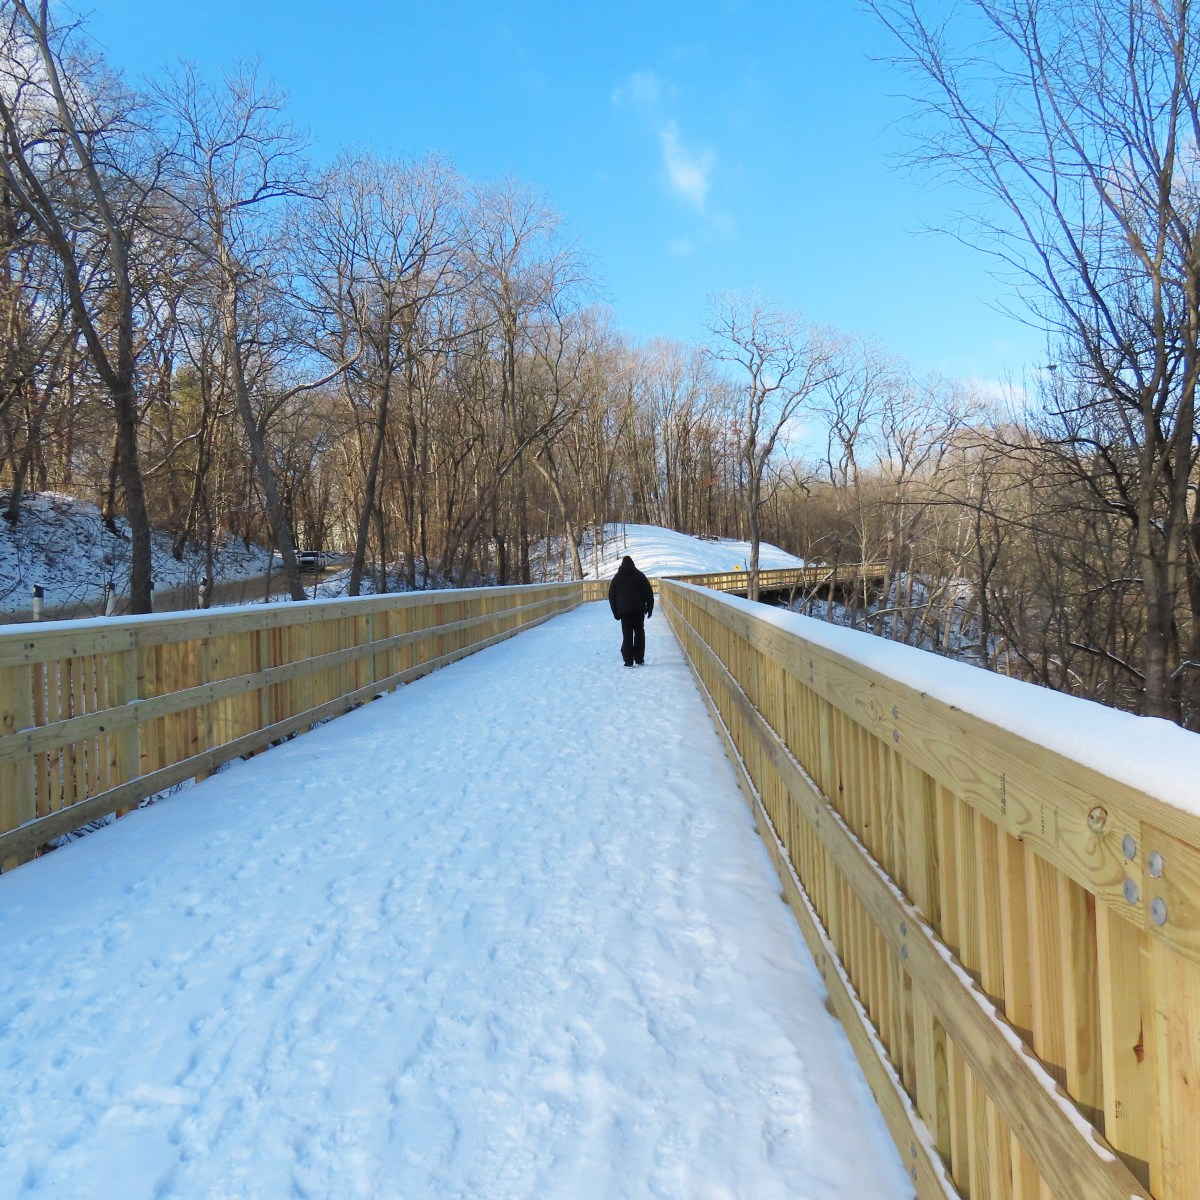 A person walks on a snowy boardwalk, facing away from the camera